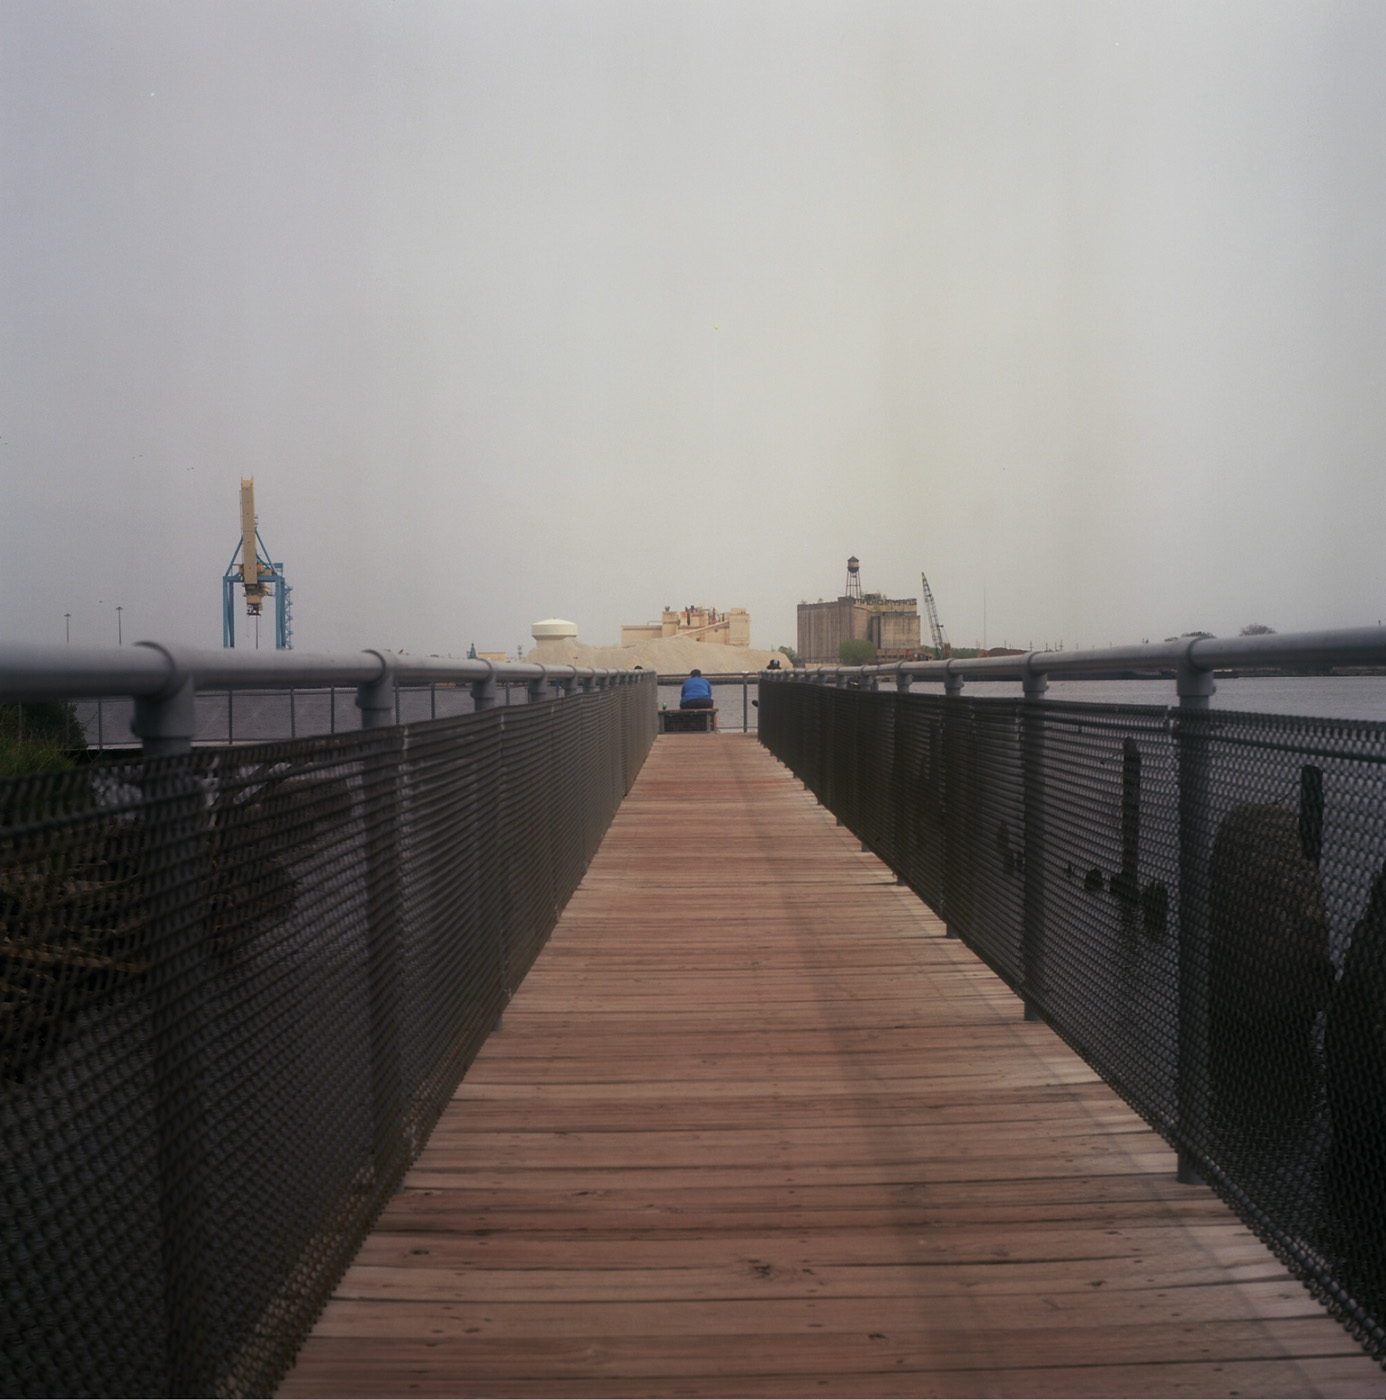 Pier at the Delaware River